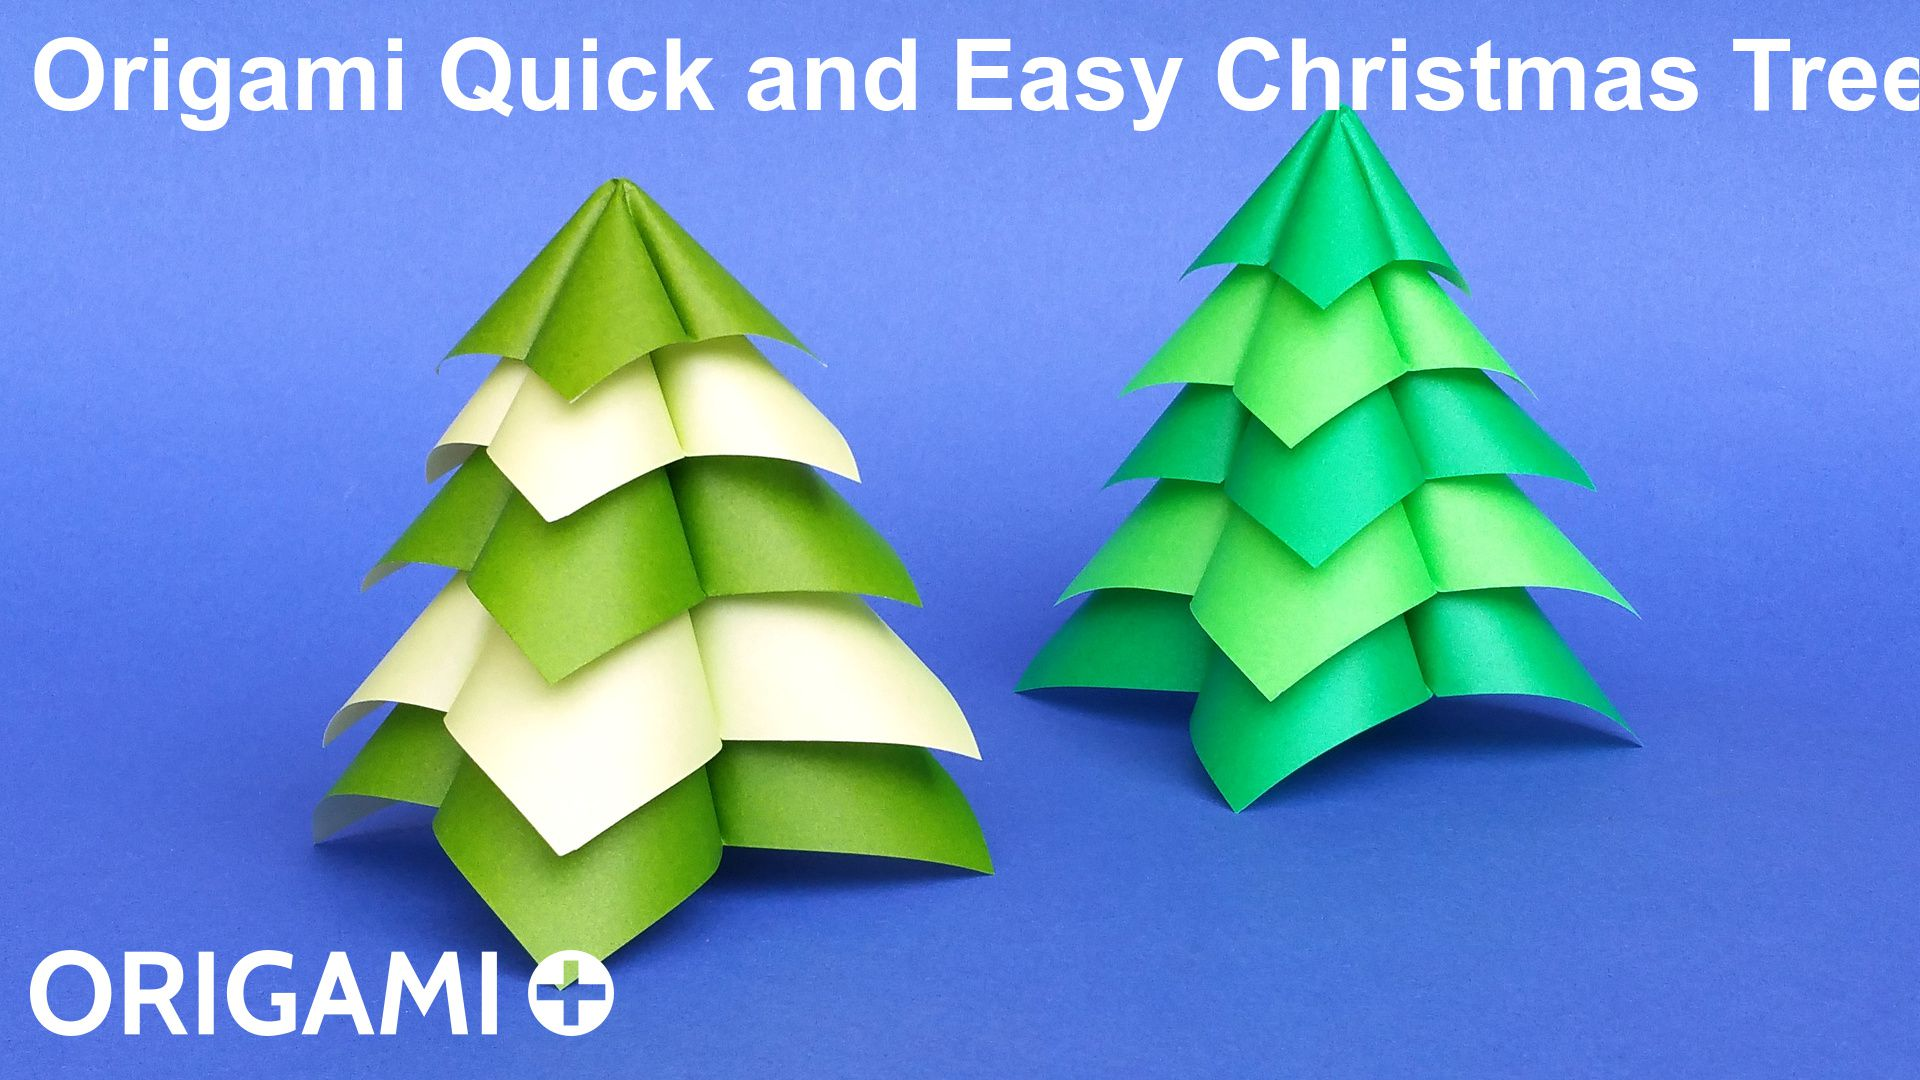 quick and easy christmas treeen1920x1080jpg - Easy Christmas Tree